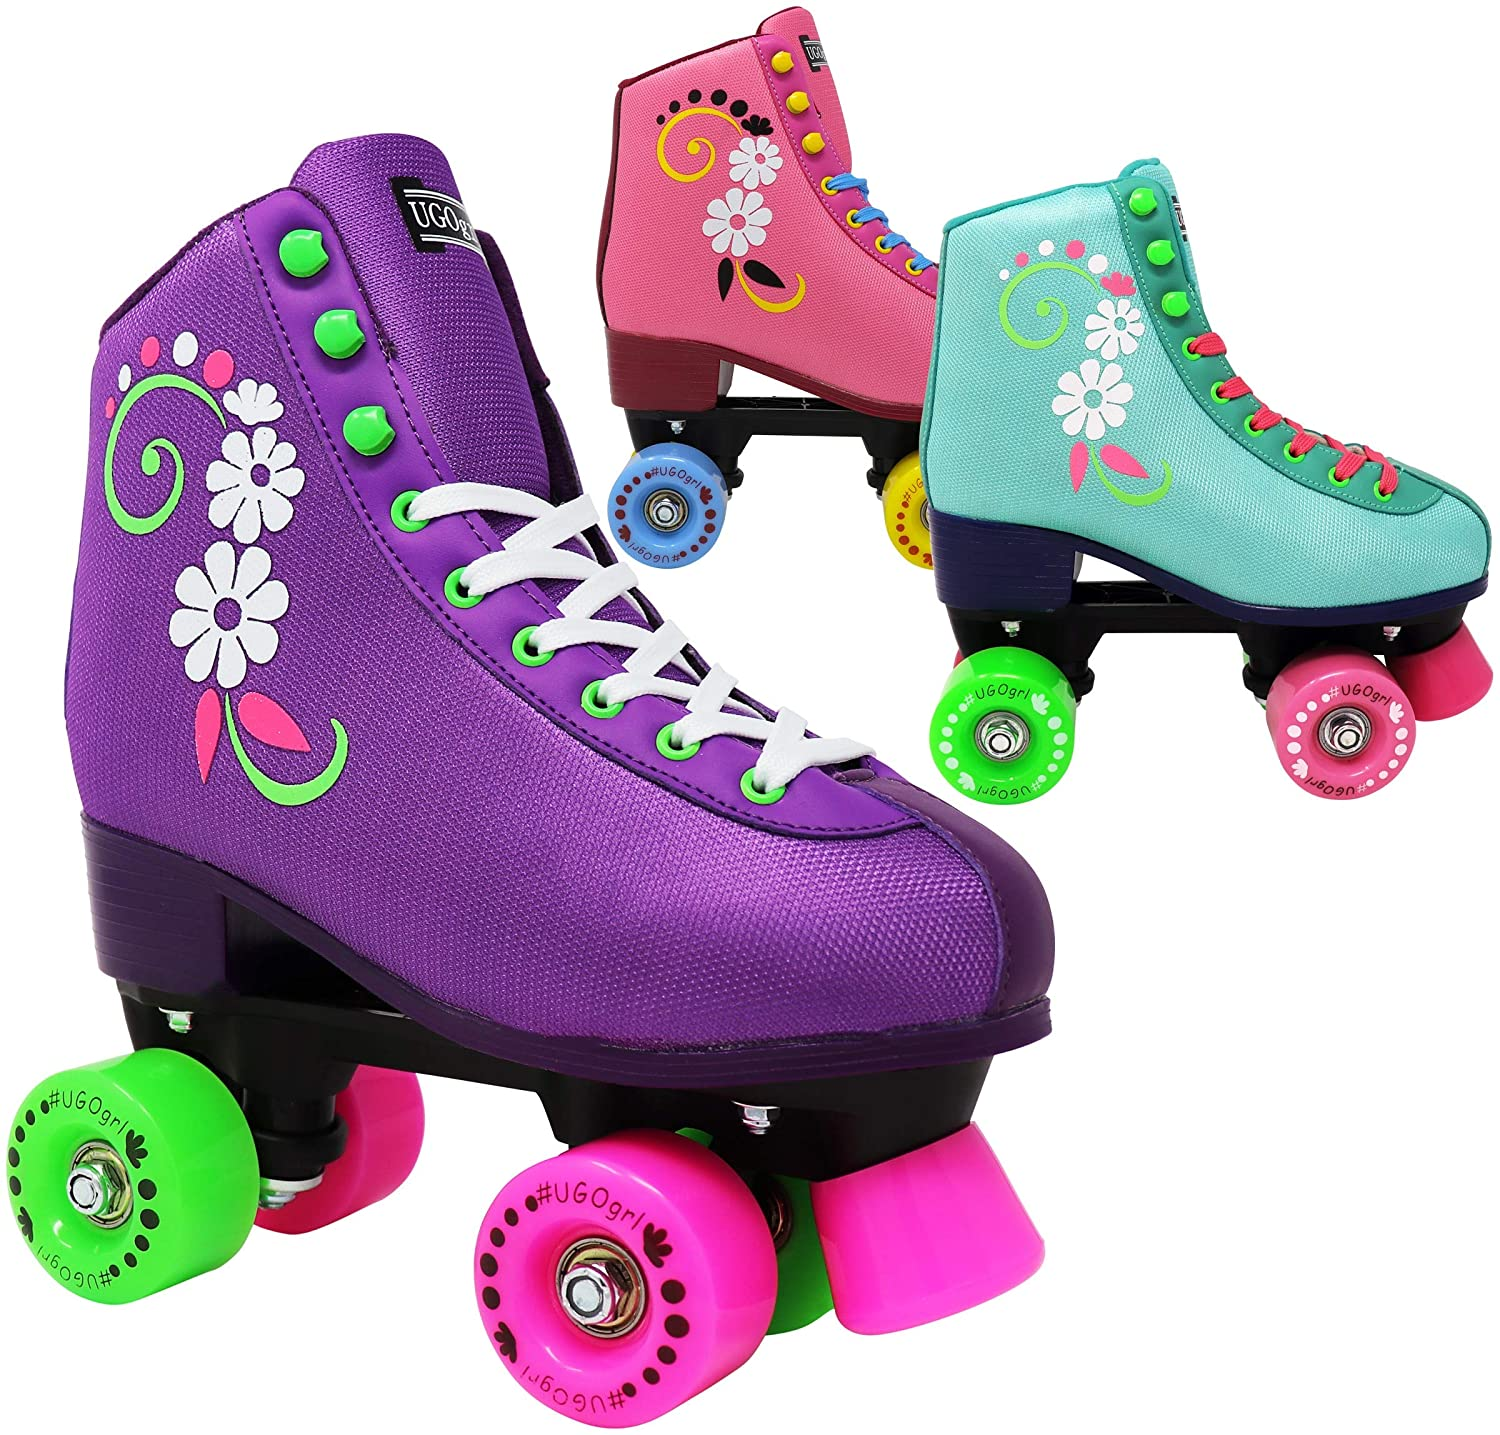 Lenexa uGOgrl Roller Skates for Girls – Kids Quad Roller Skate – Indoor, Outdoor, Derby Children s Skate – Rollerskates Made for Kids – Great Youth Skate for Beginners